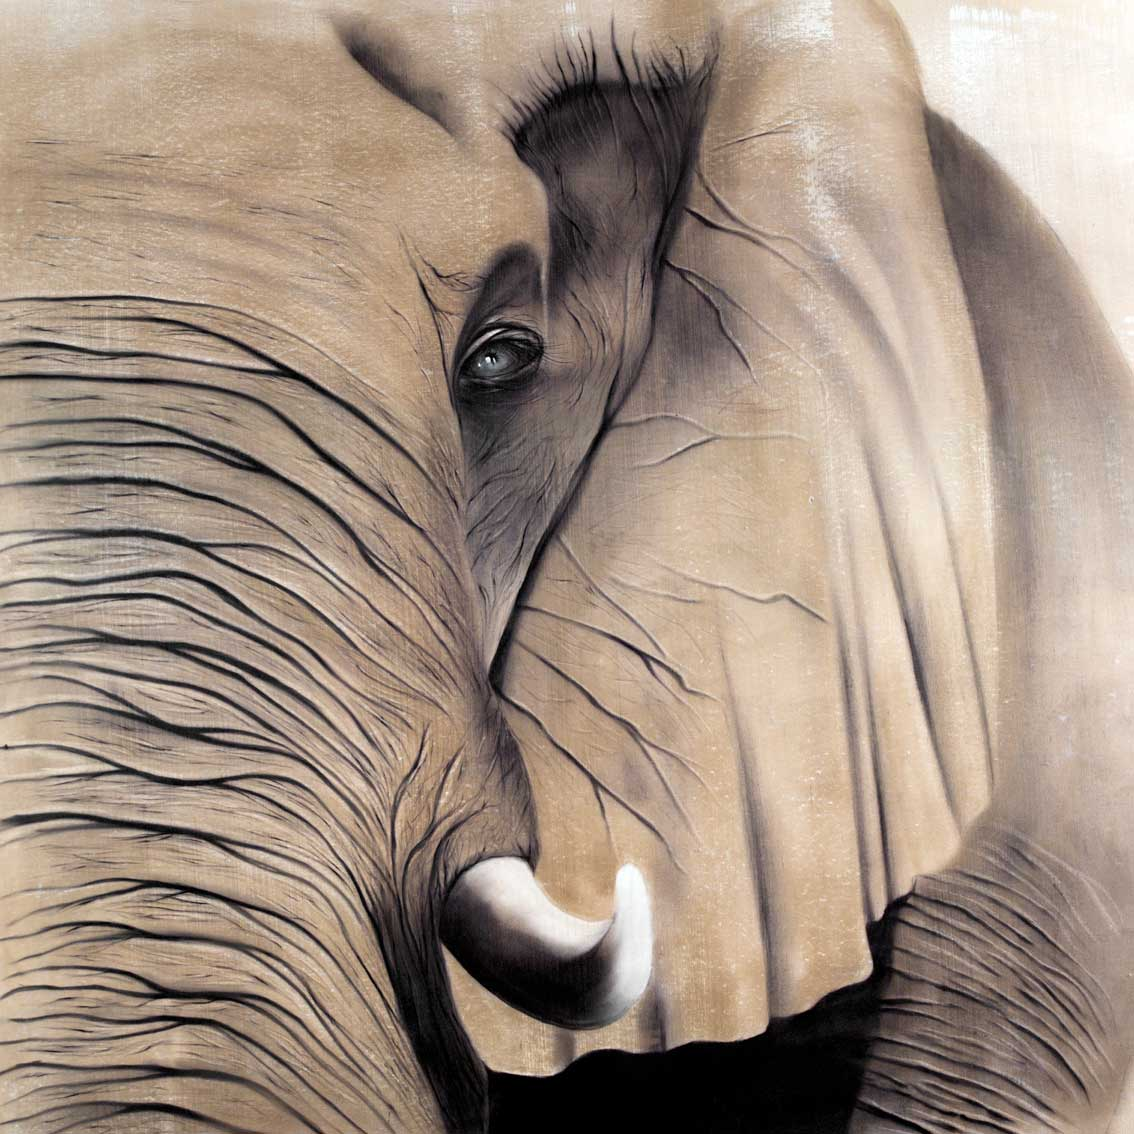 Elephant 2 Elephant Thierry Bisch Animal Painter Editions